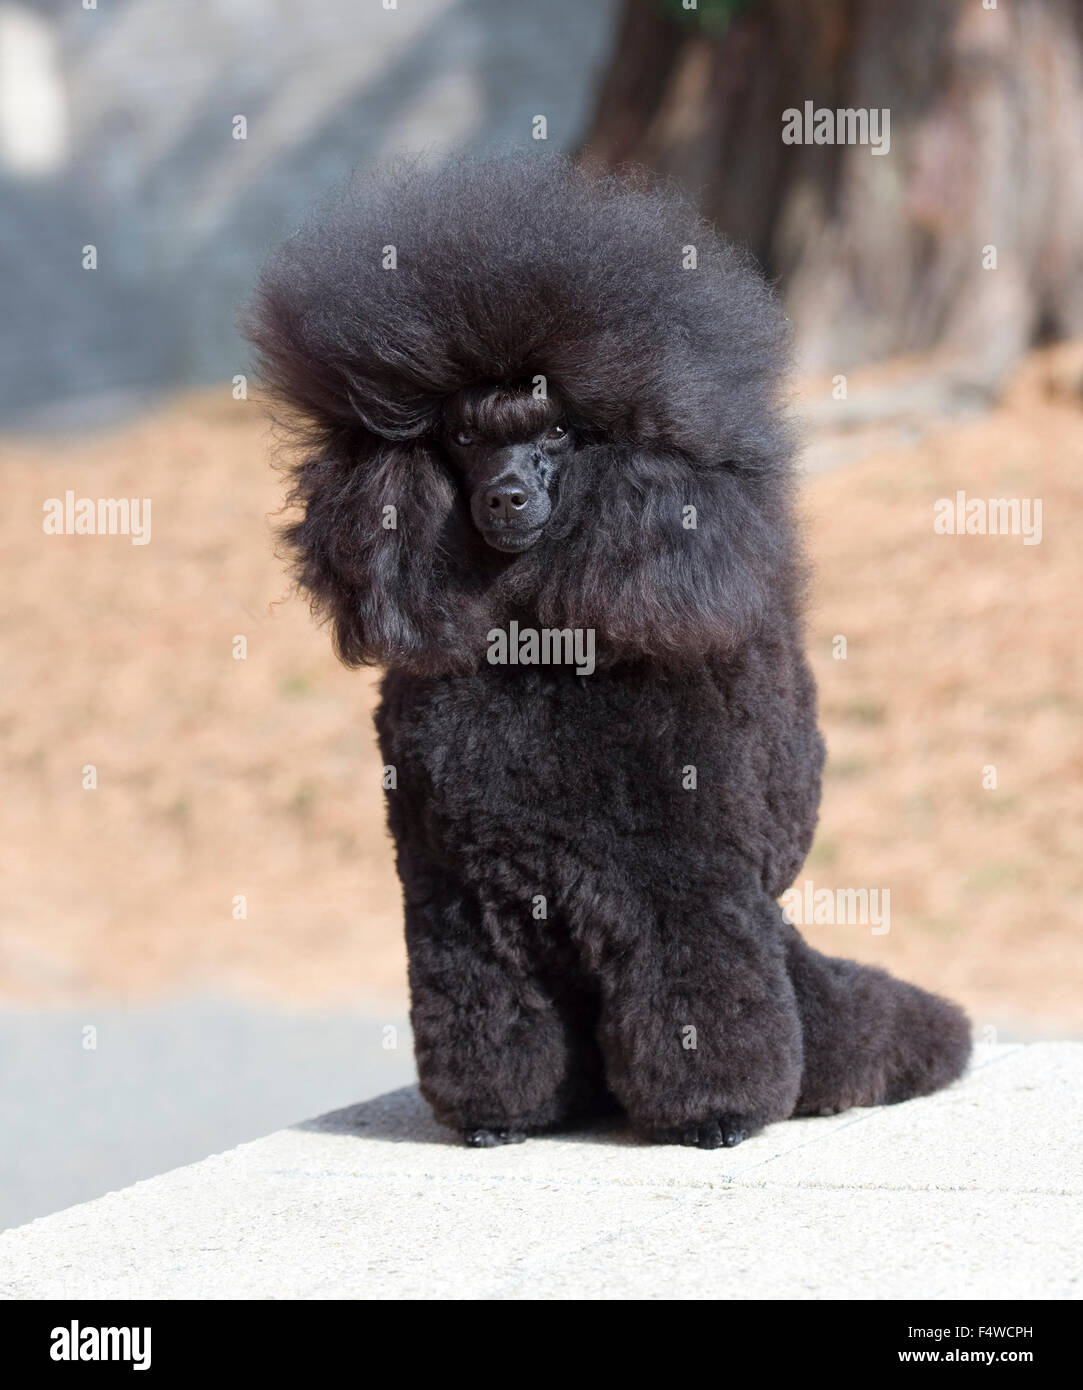 black toy poodle - Stock Image